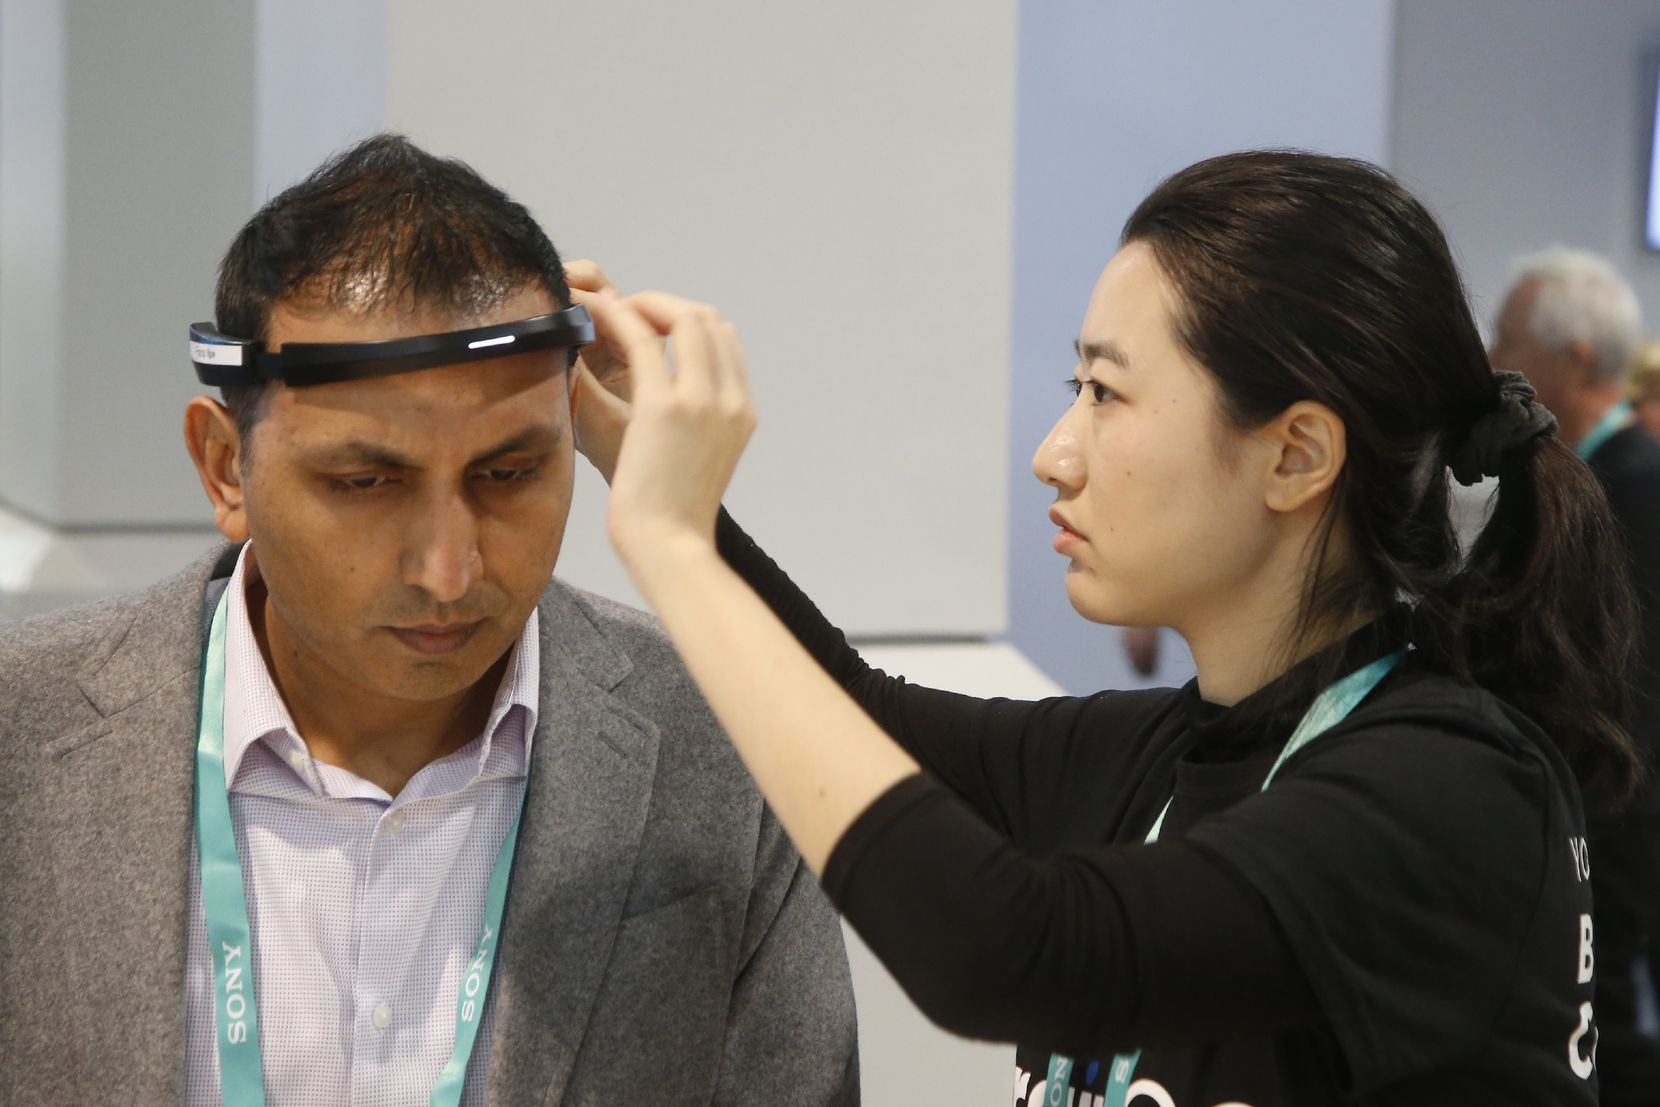 Yuwei Gu, right, of Ampligence, helps Ammad Khan with the BrainCo brainwave-sensing headband before linking with its software platforms. (AP Photo/Ross D. Franklin)